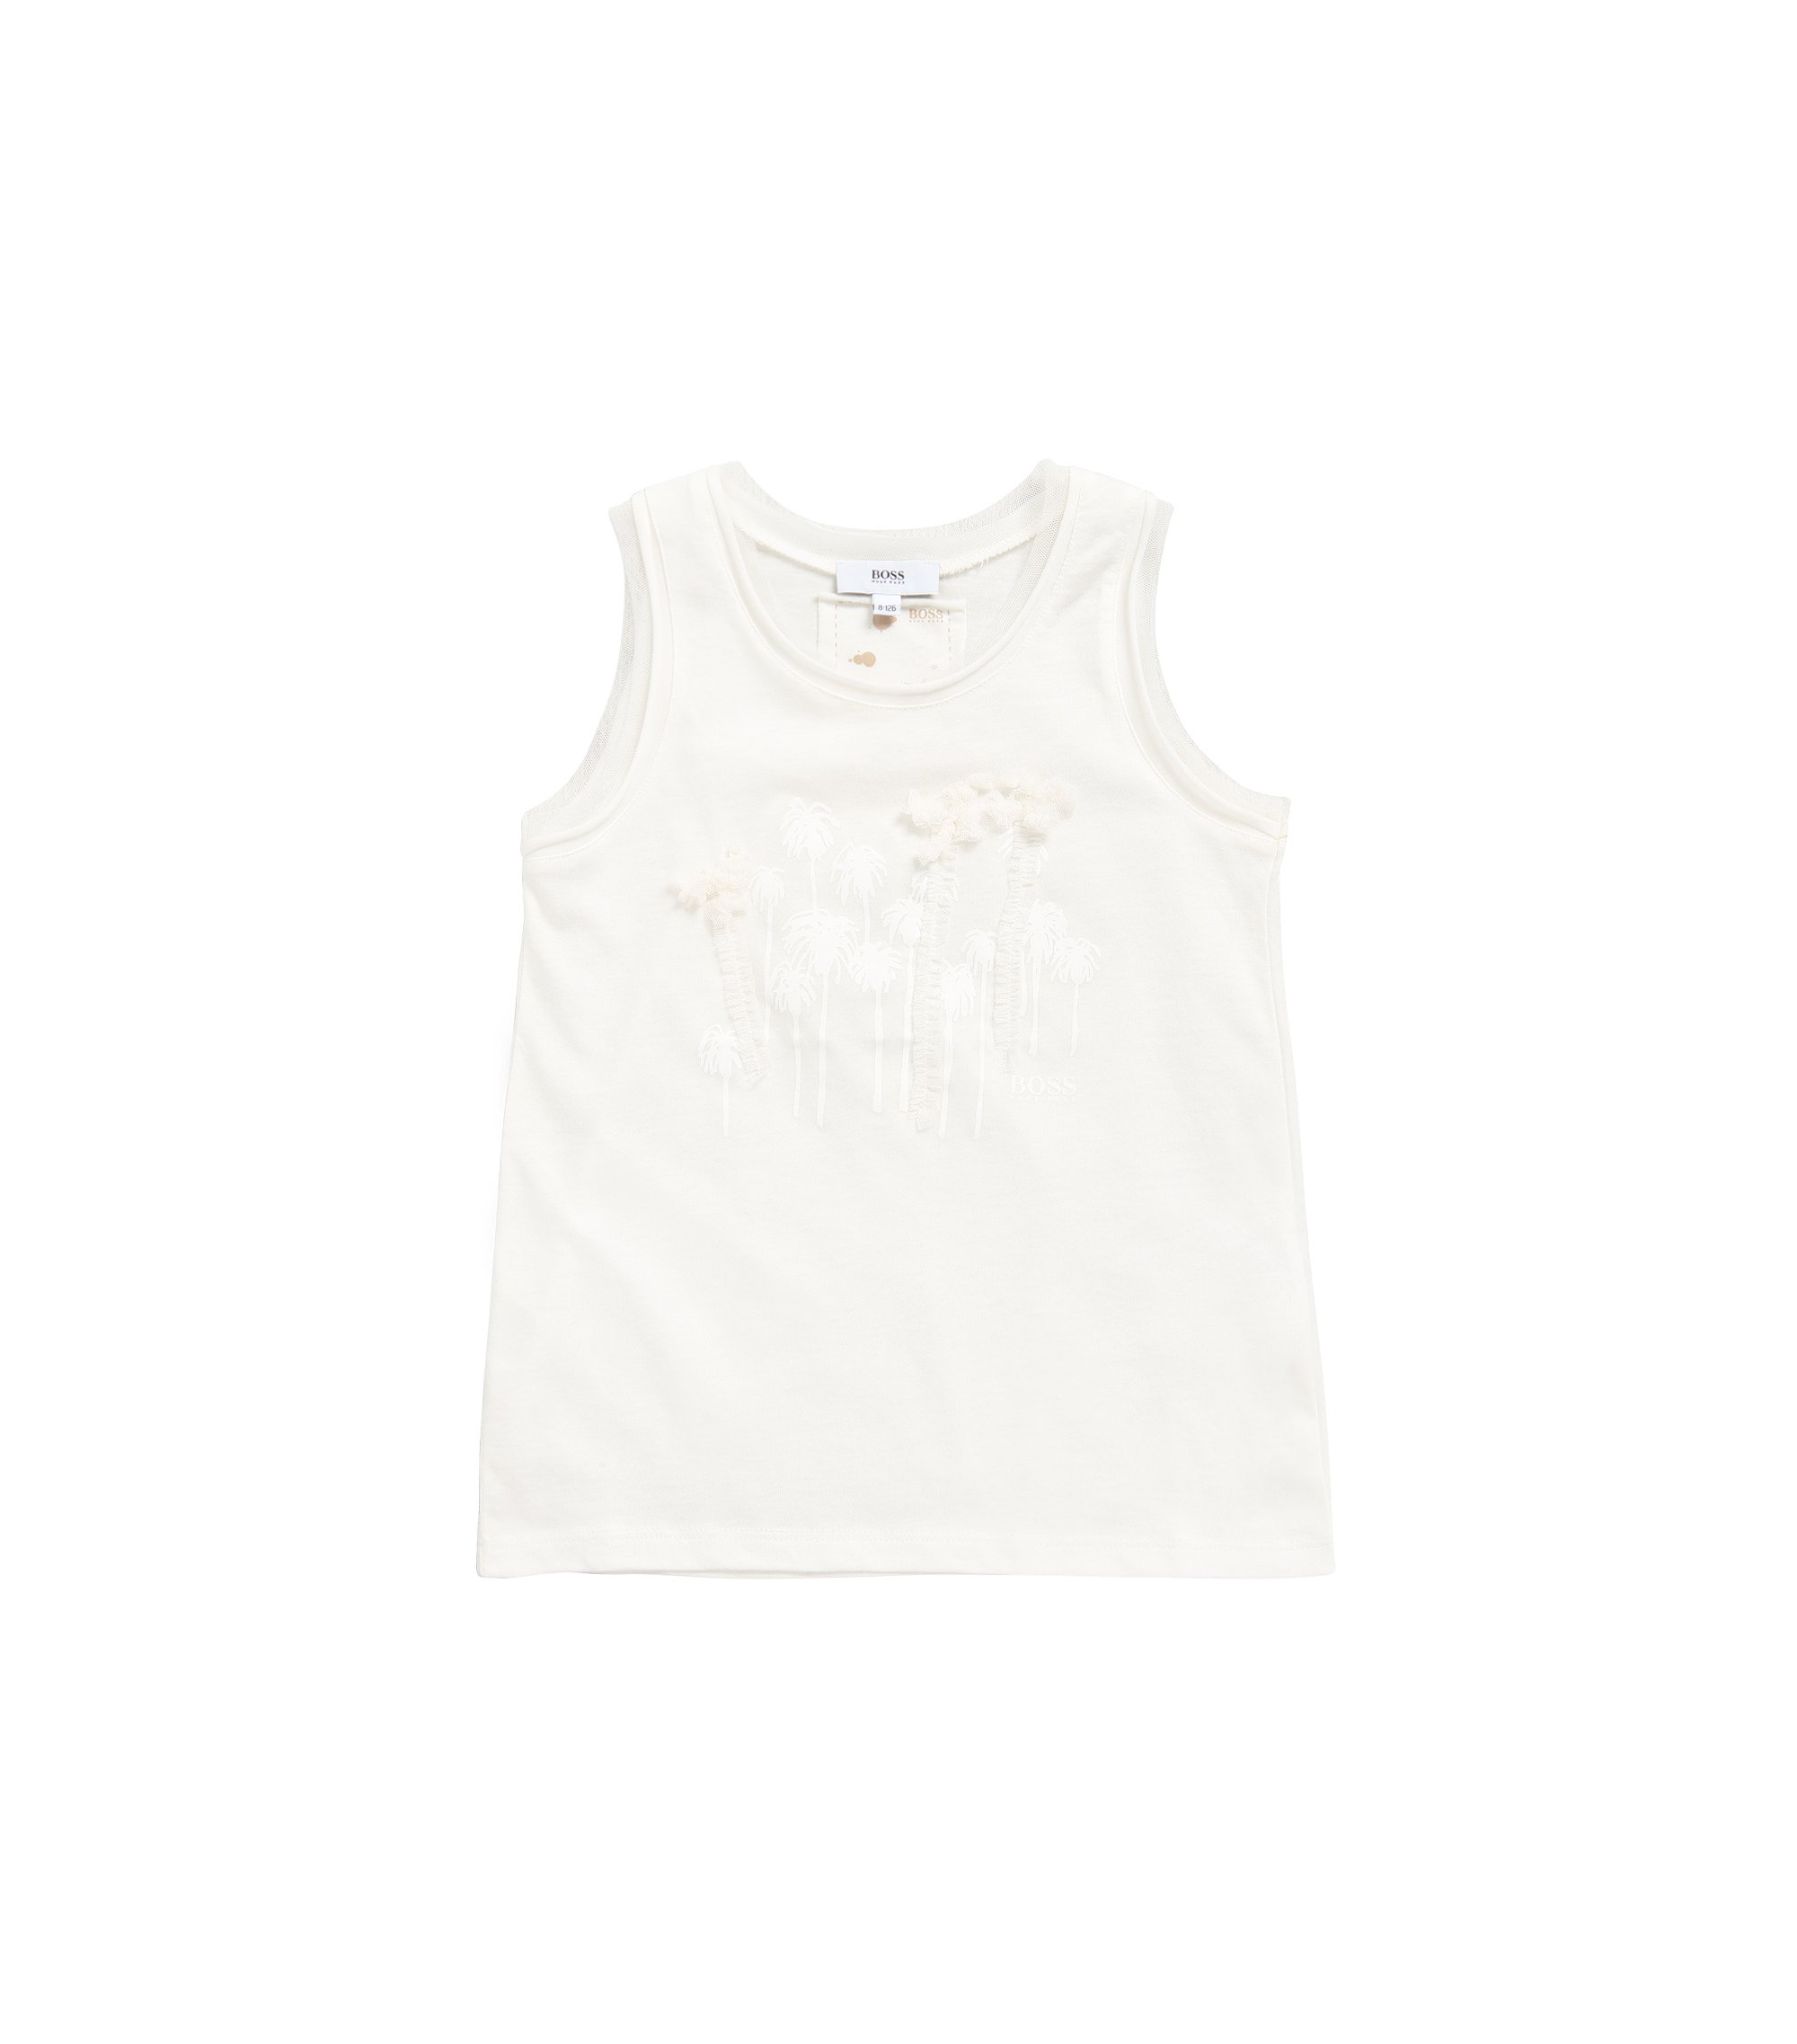 Kids' top in cotton-modal blend with palm-tree print: 'J15336', Natural